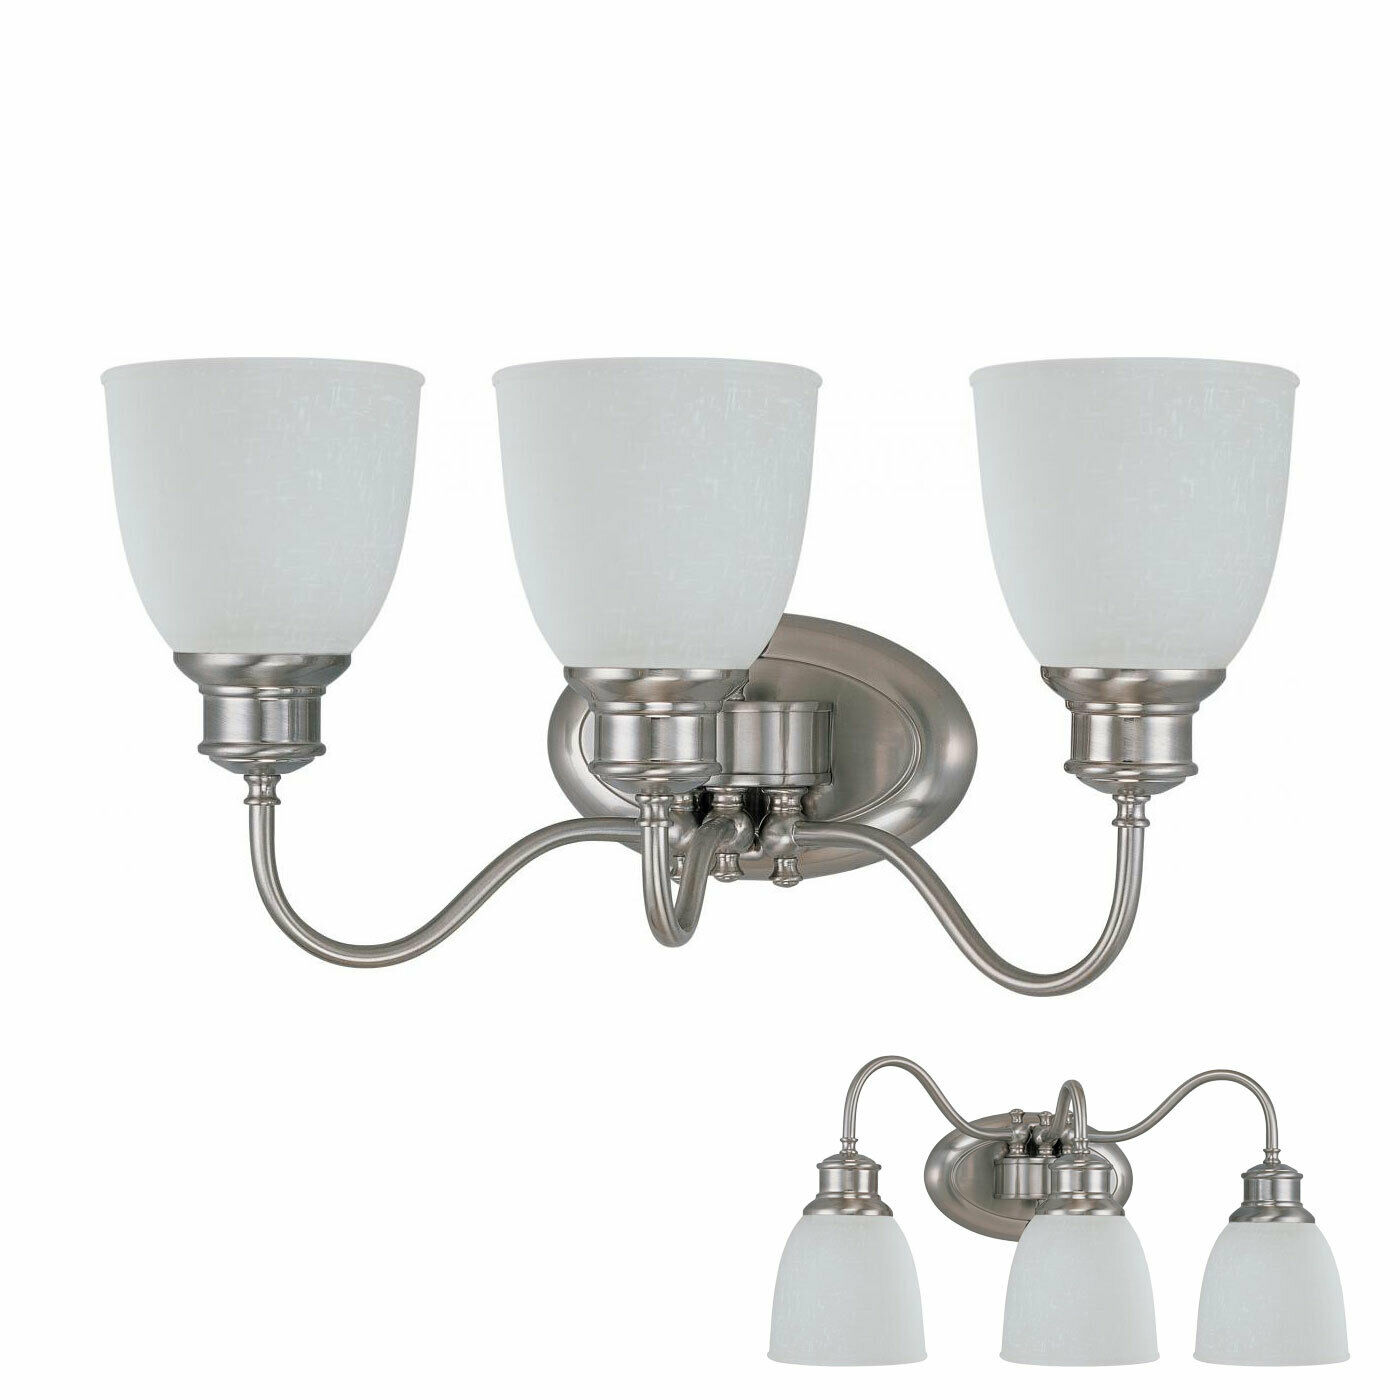 Portfolio 3 Bulb Chrome Vanity Light Wall Fixture With Frosted Glass Shades For Sale Online Ebay